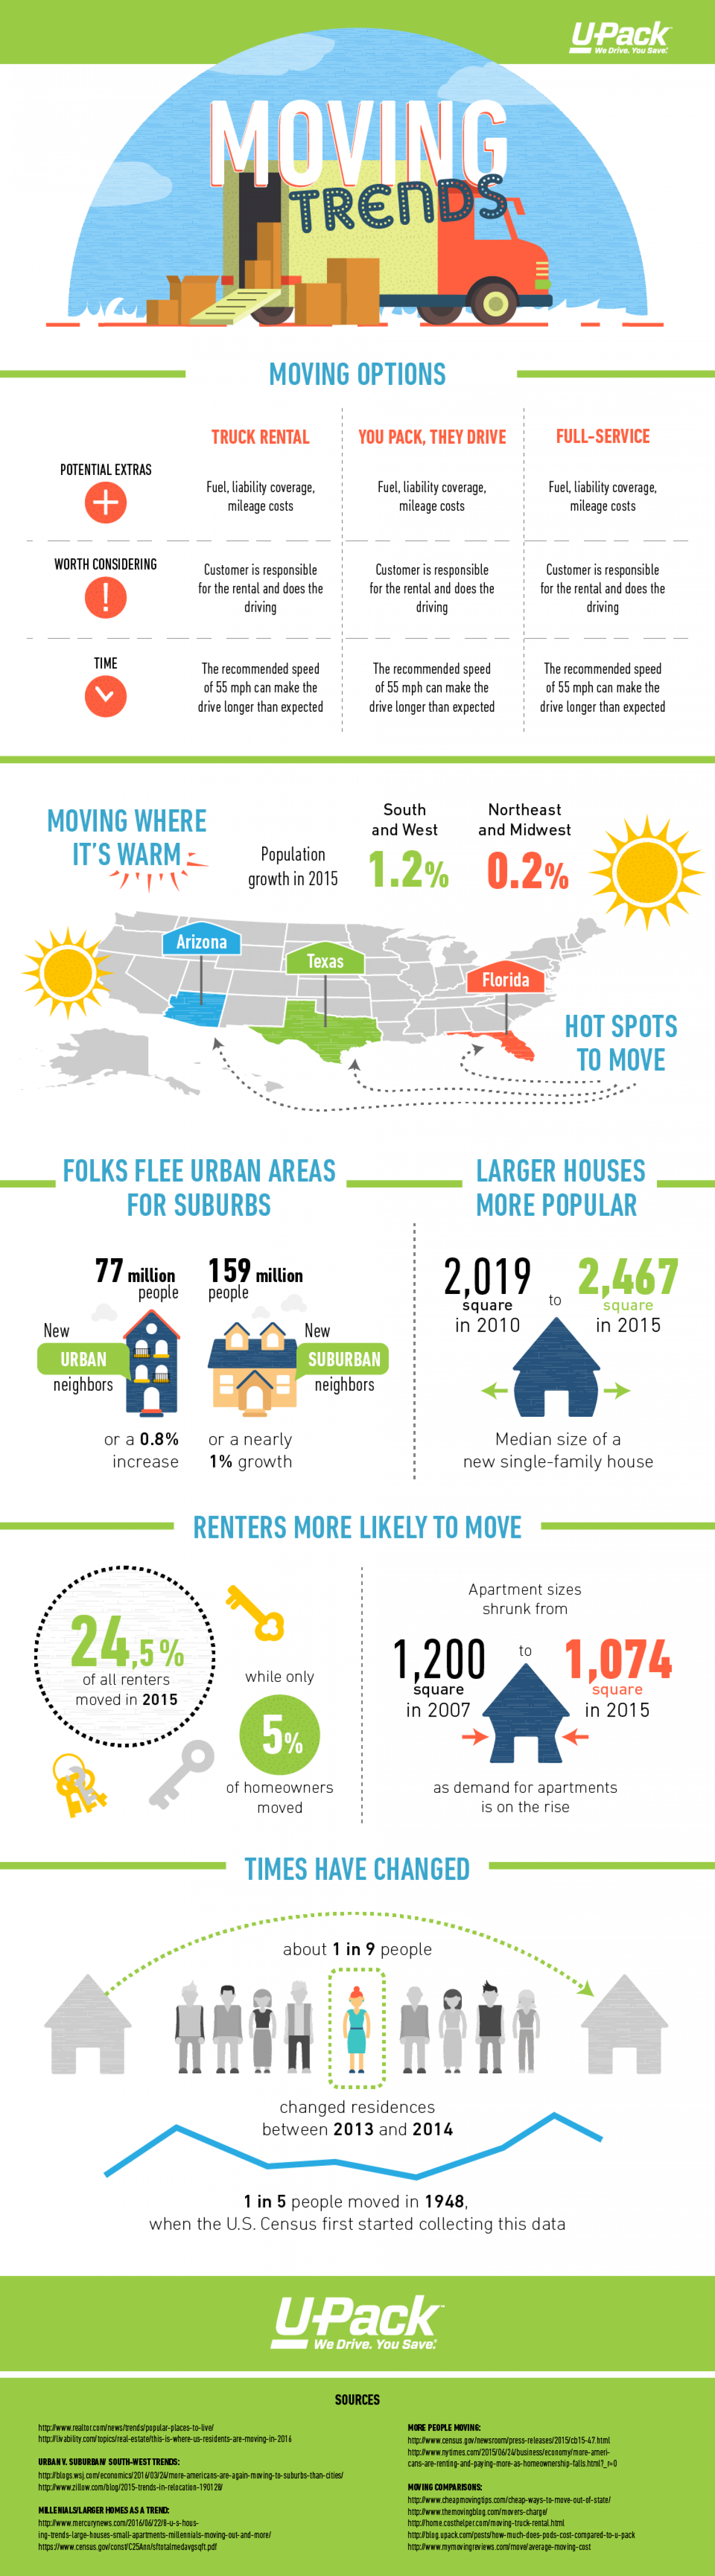 Moving Trends Infographic